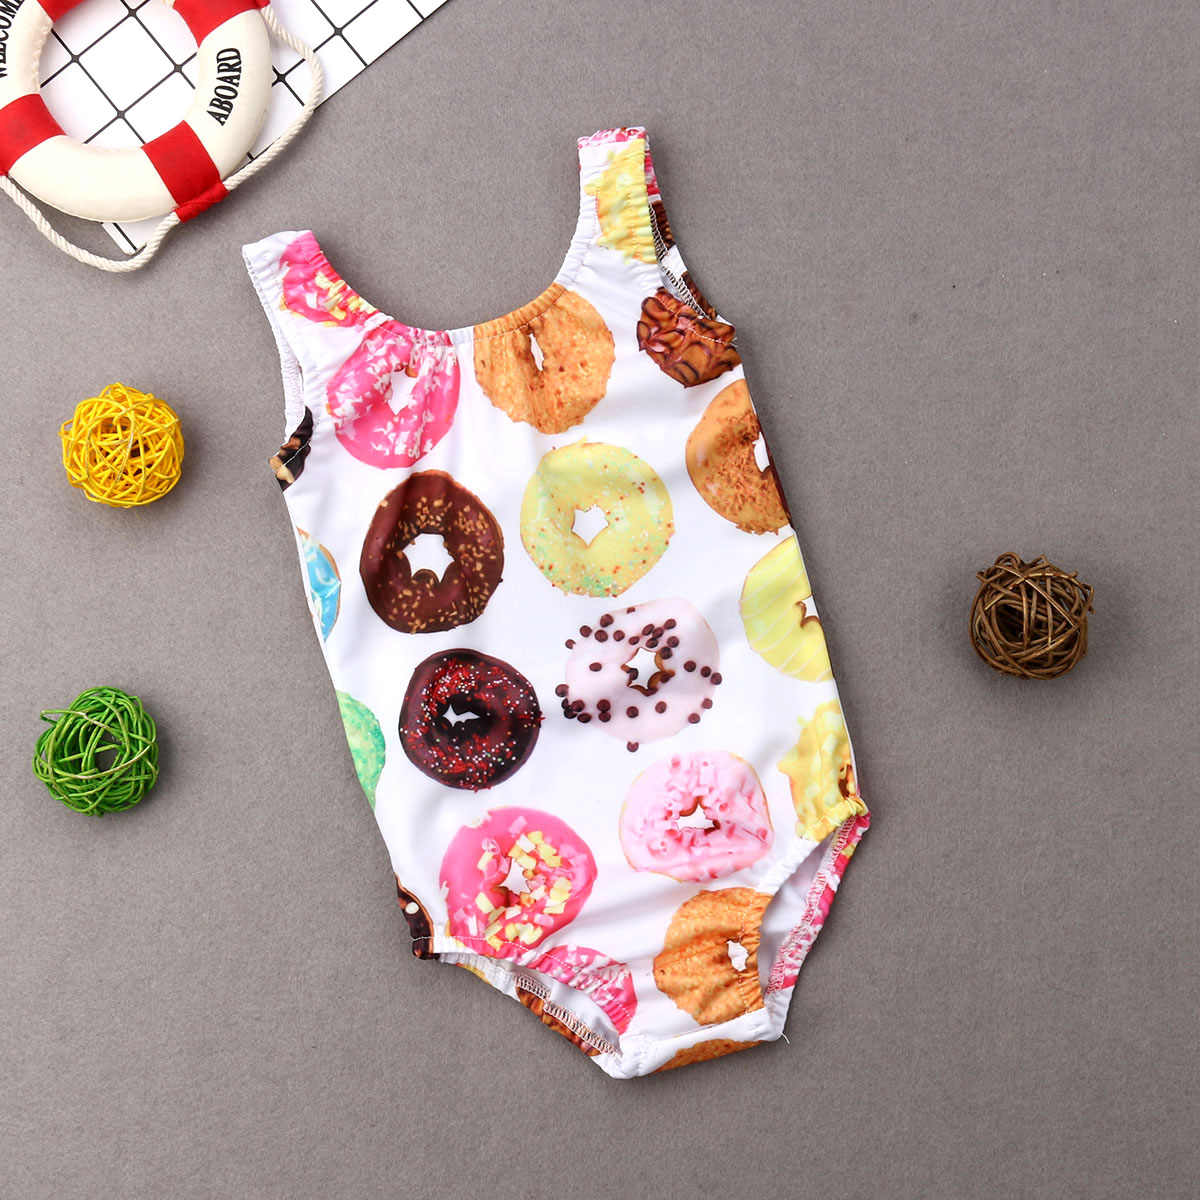 ddac37b6e5a8 ... Little Girls Donuts Printing One-piece Swimsuit Toddler Baby Kid Girl Cartoon  Swimsuits Swimwear Swimming